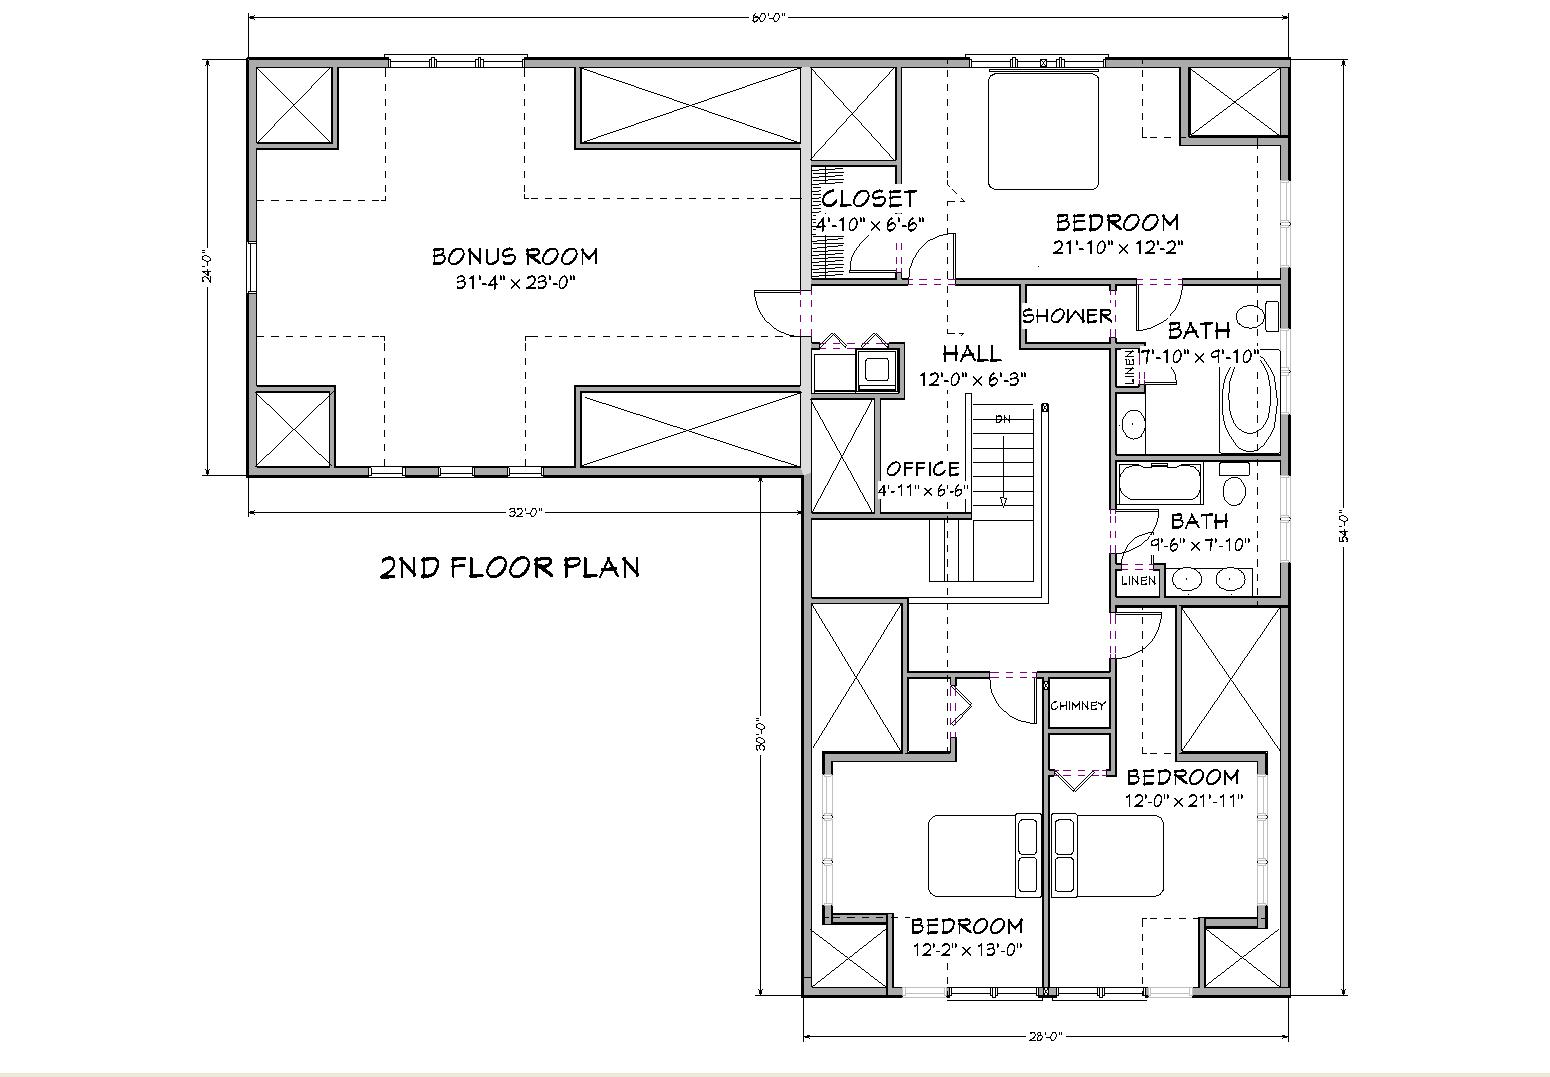 3000 square foot home plans floor plans for Home designs 3000 square feet